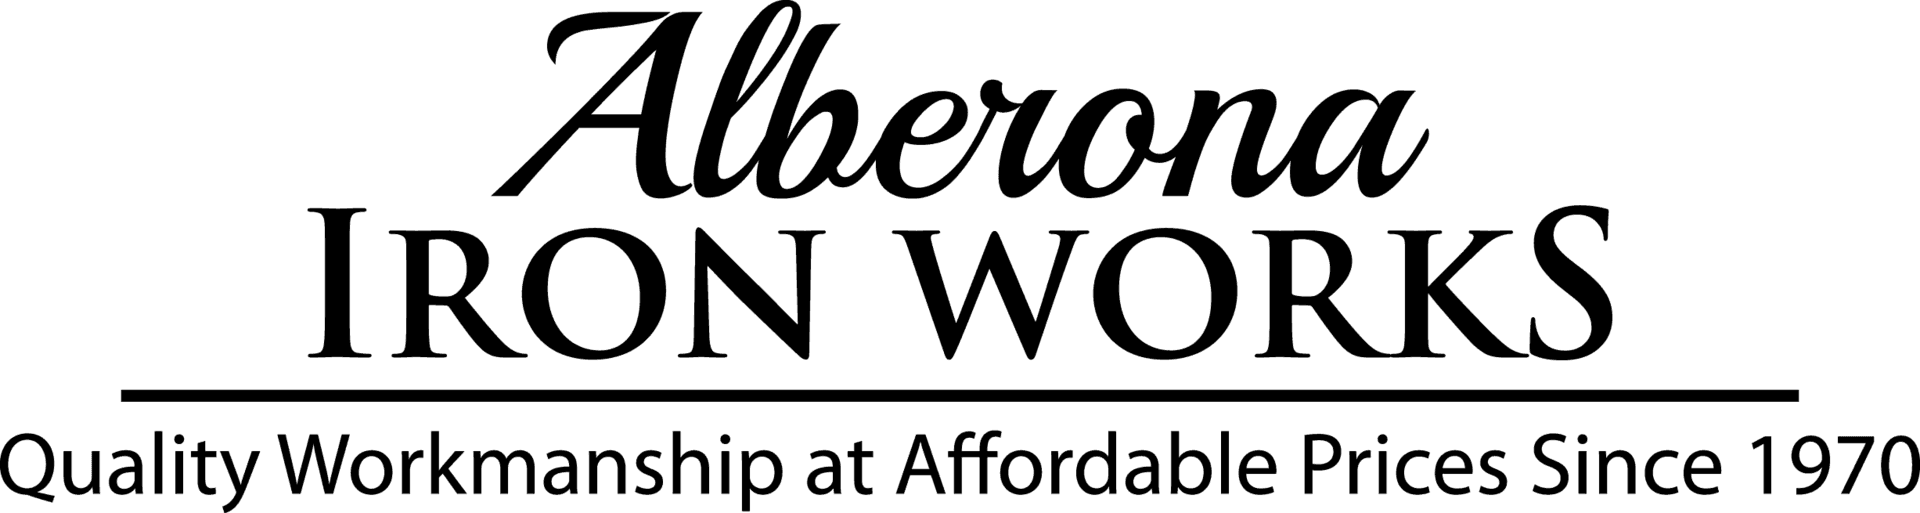 Alberona Iron Works Inc logo